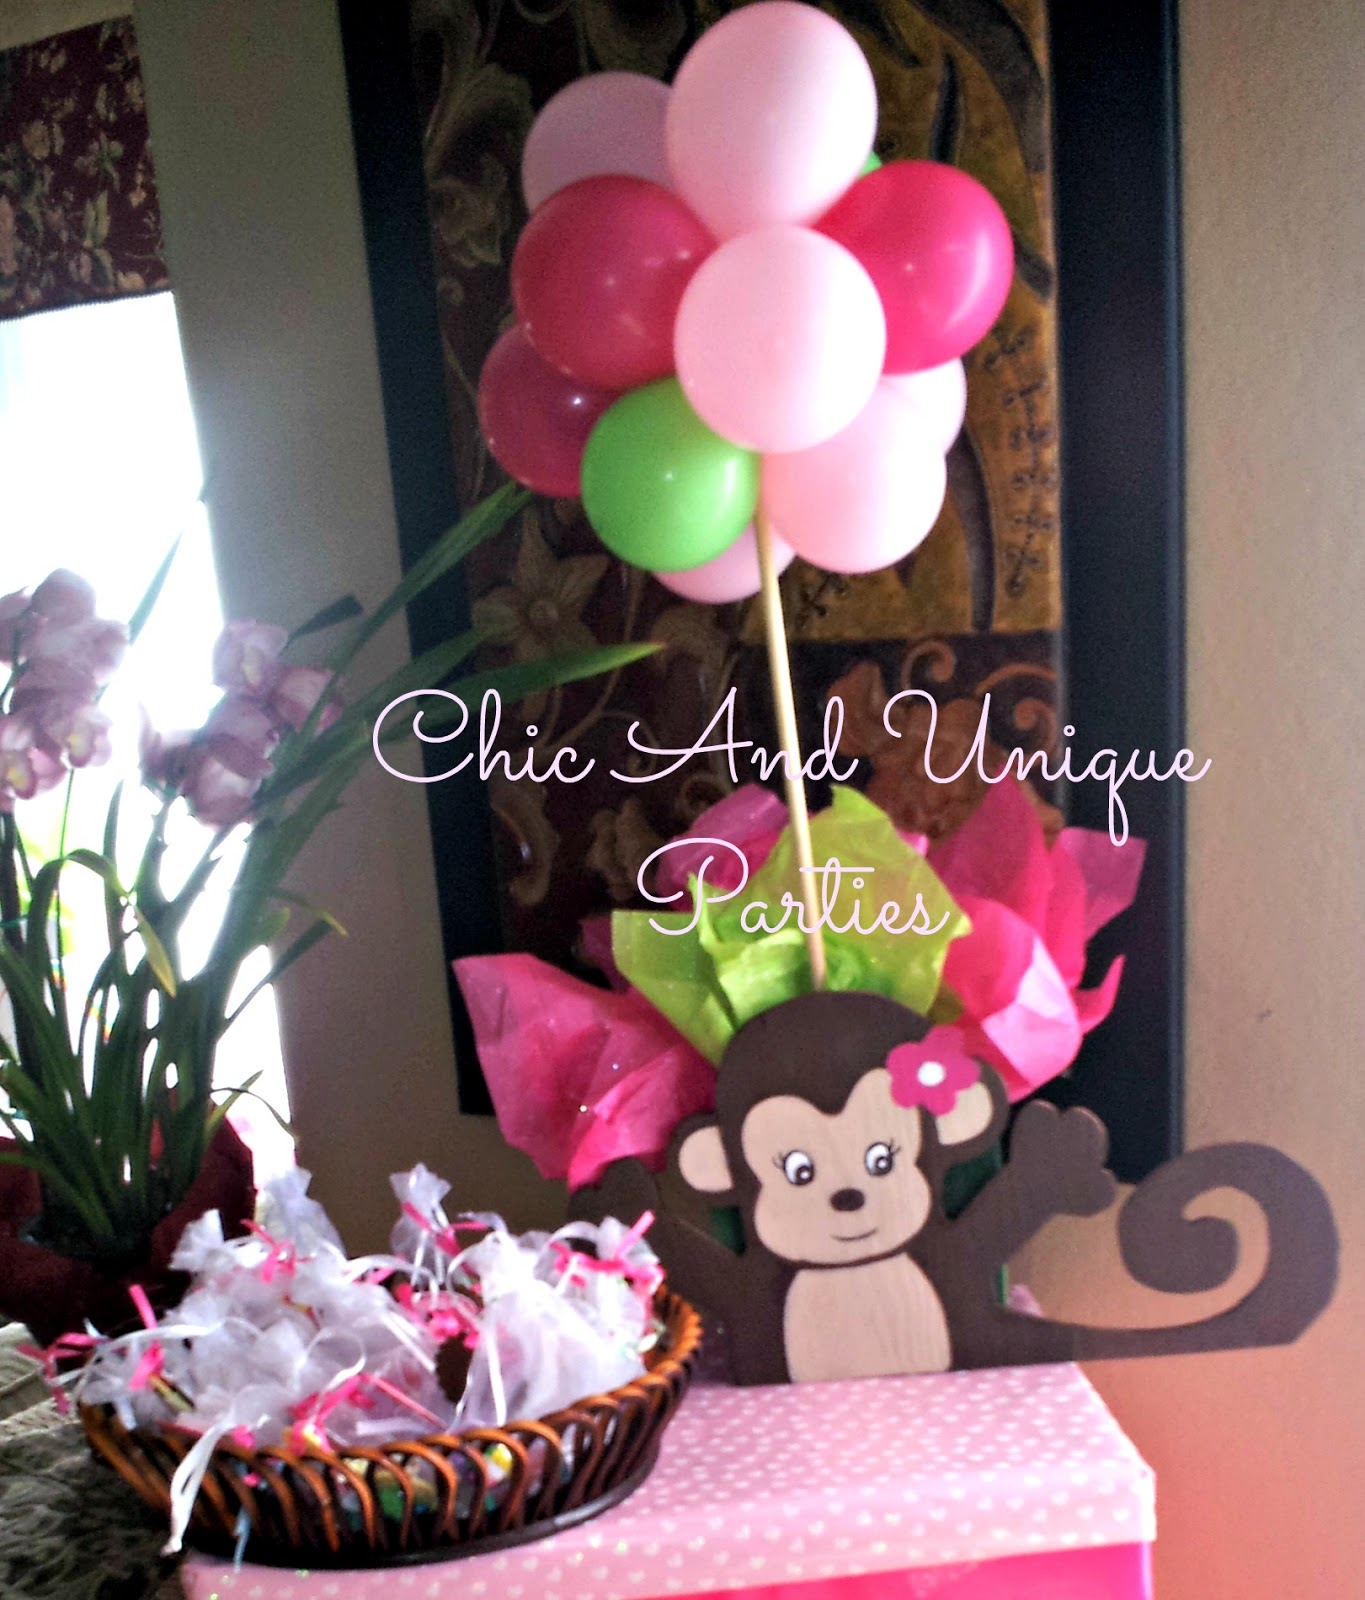 Chic and unique parties girl monkey baby shower - Baby shower monkey decorations for a girl ...